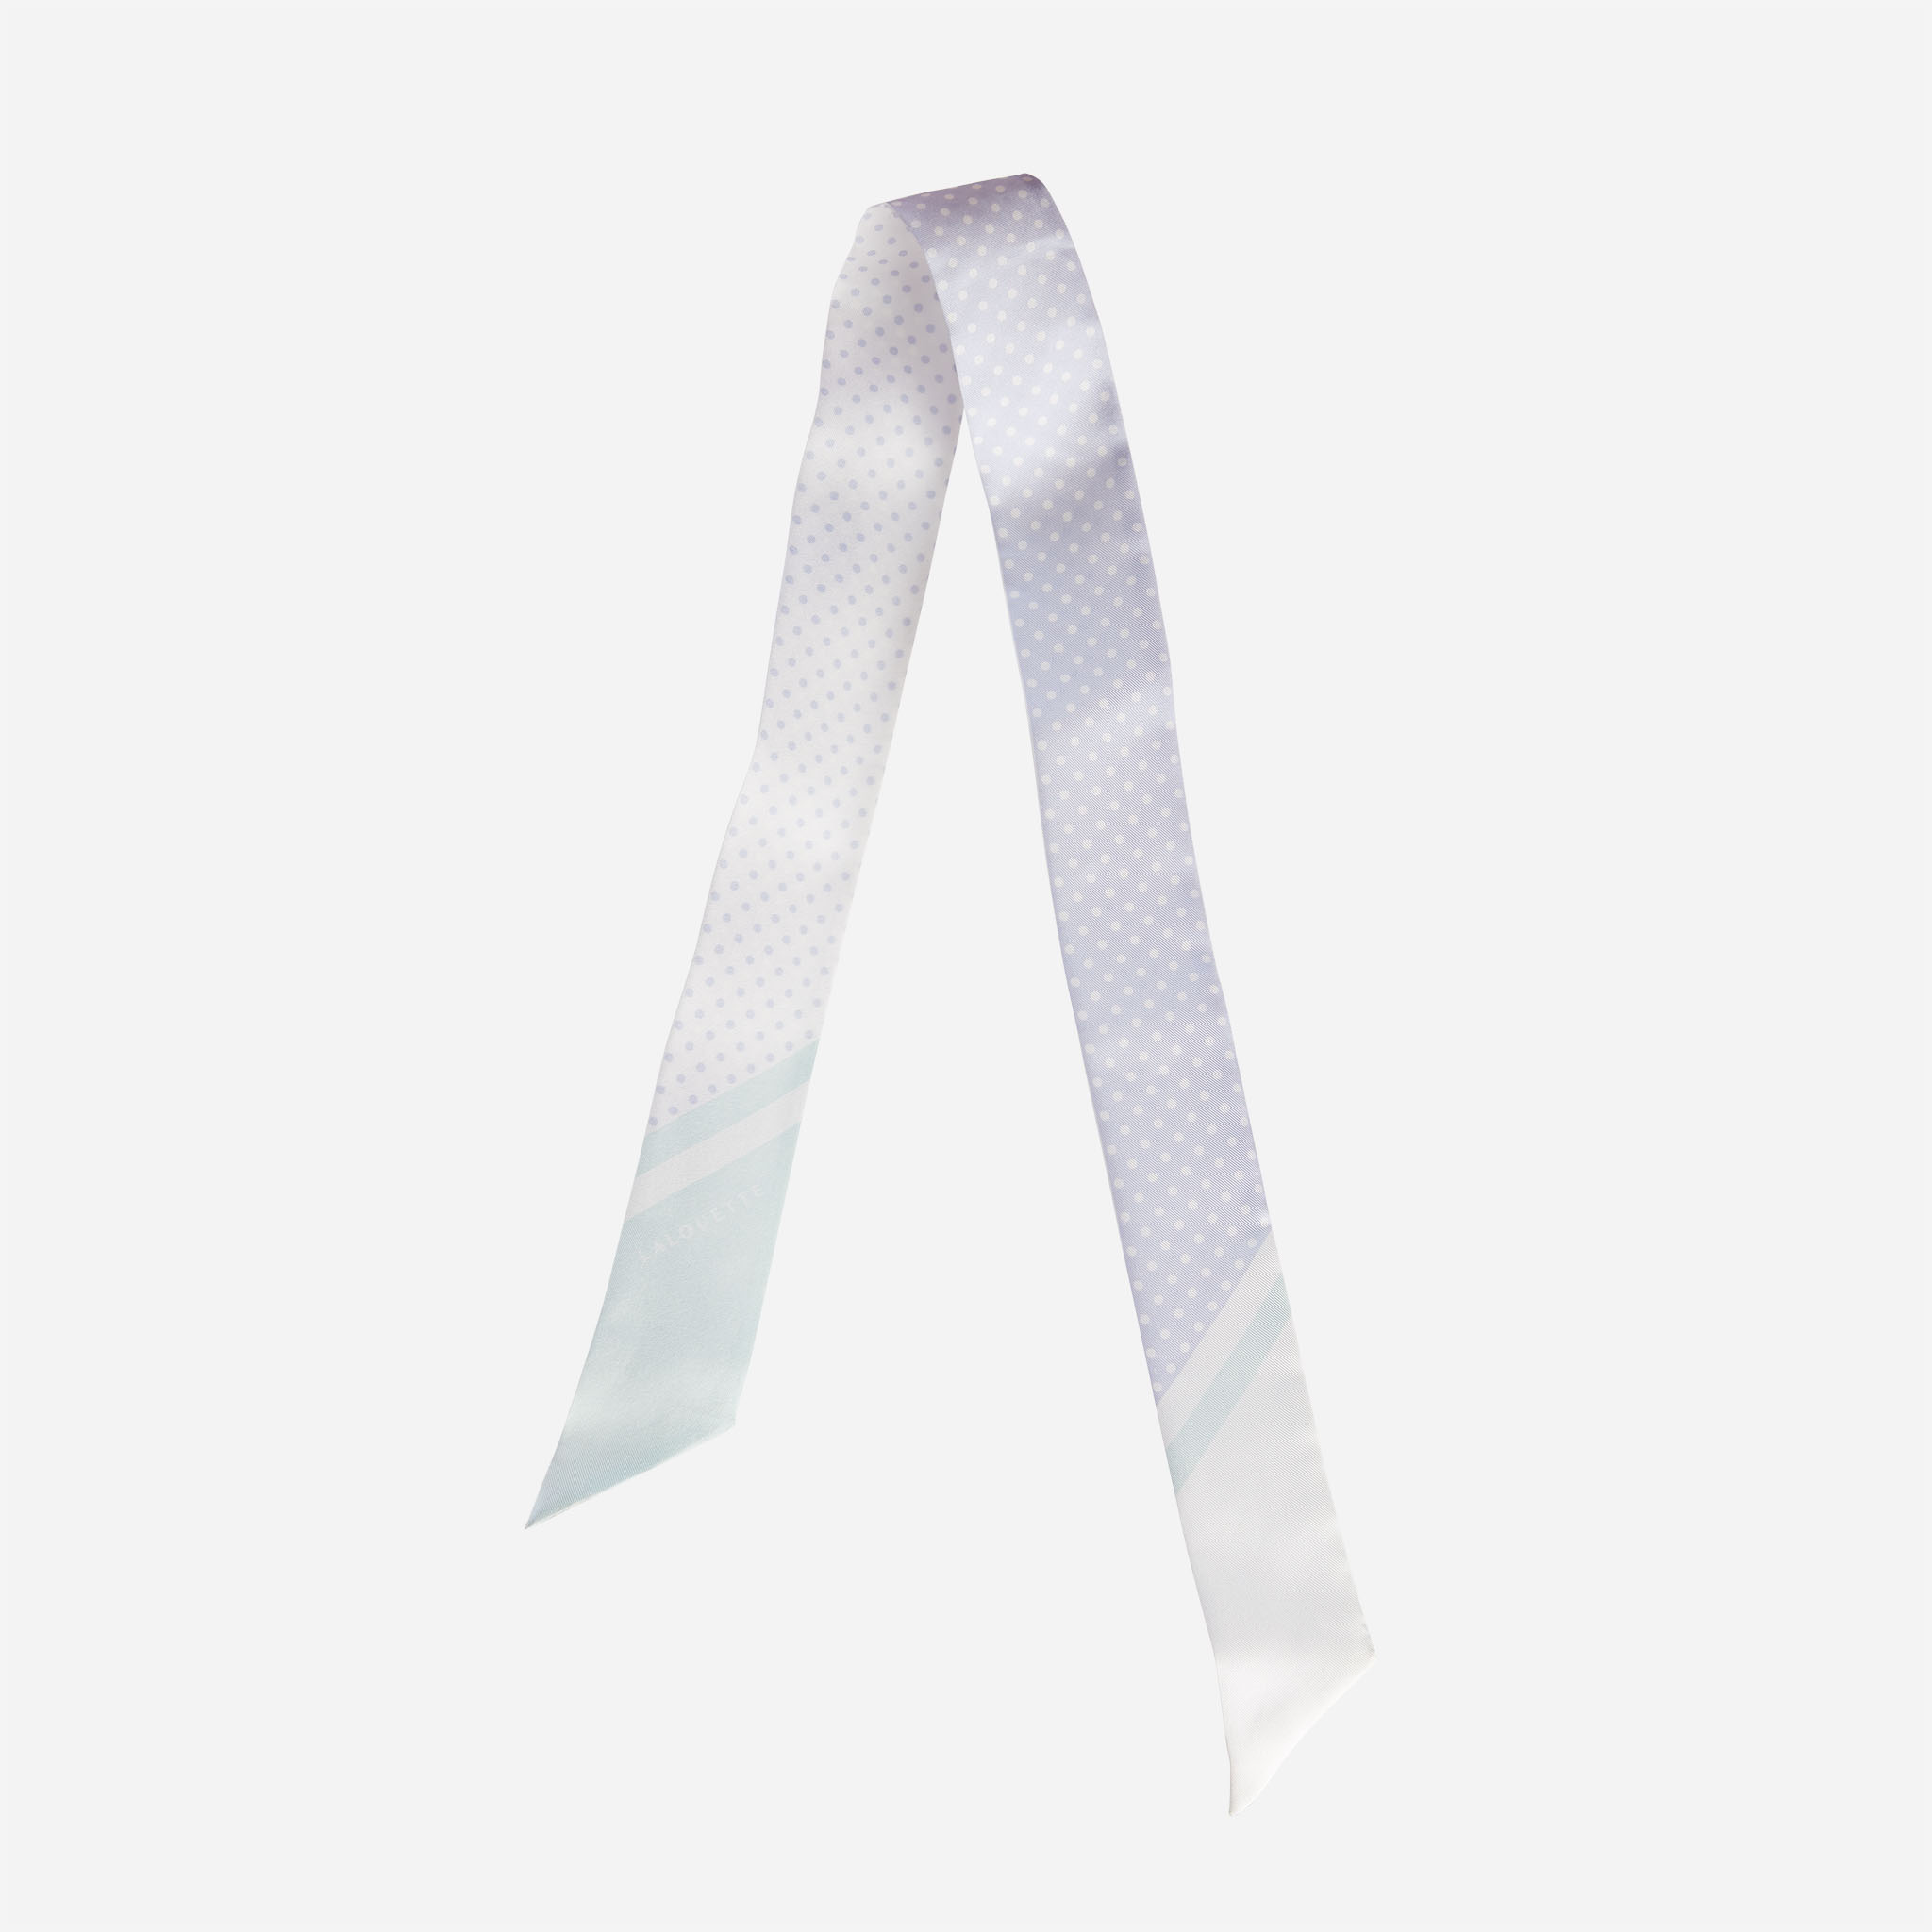 Lalouette pastel polka dot skinny silk scarf in air